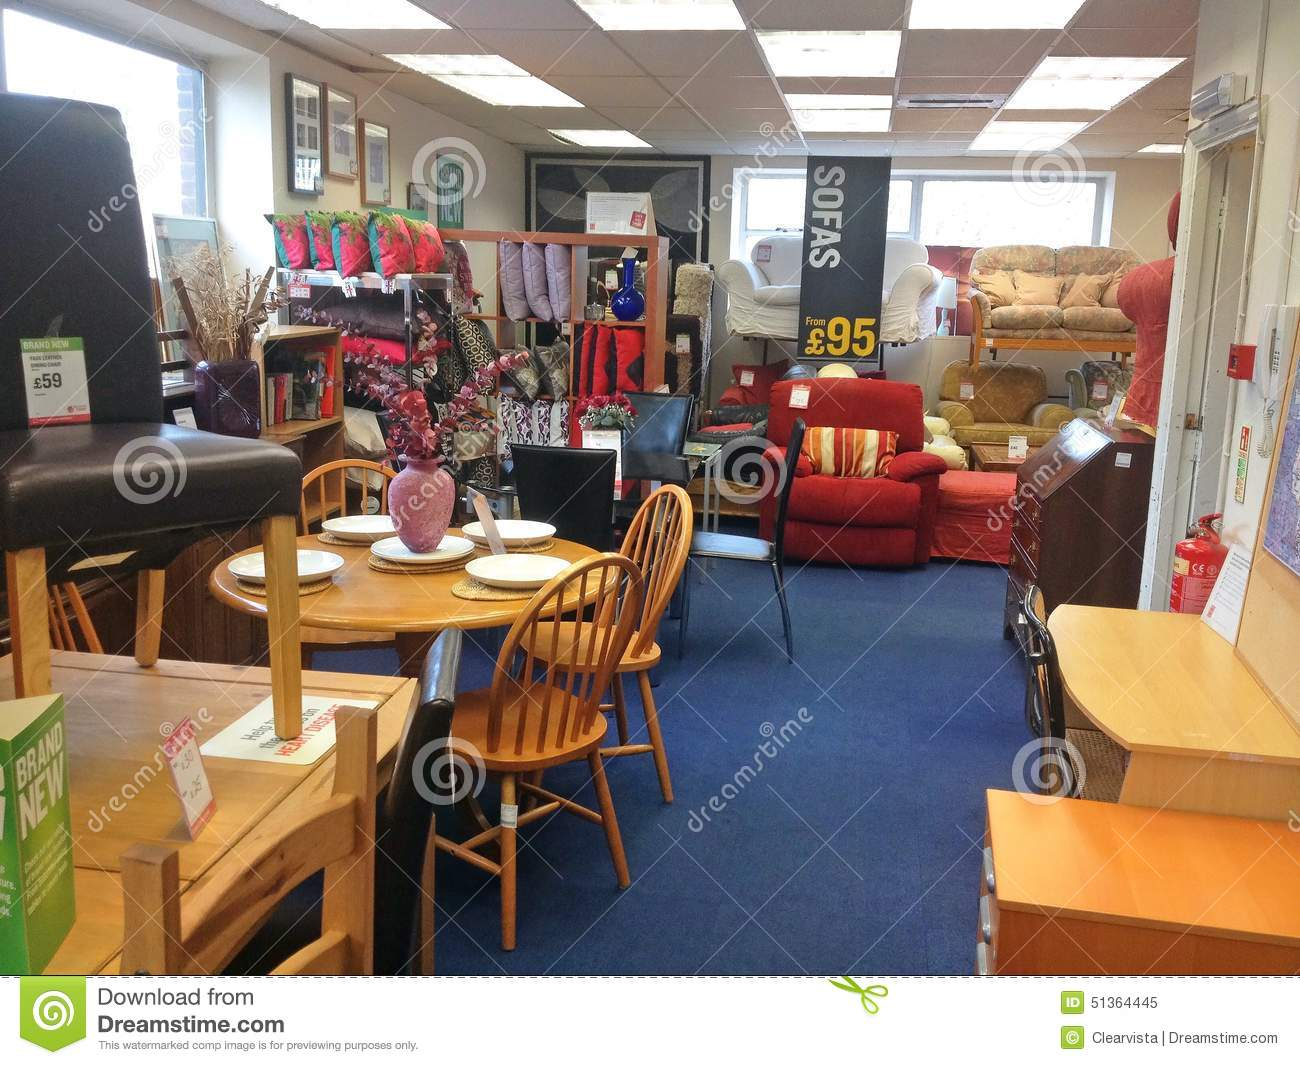 Furniture Inside A Second Hand Used Charity Shop